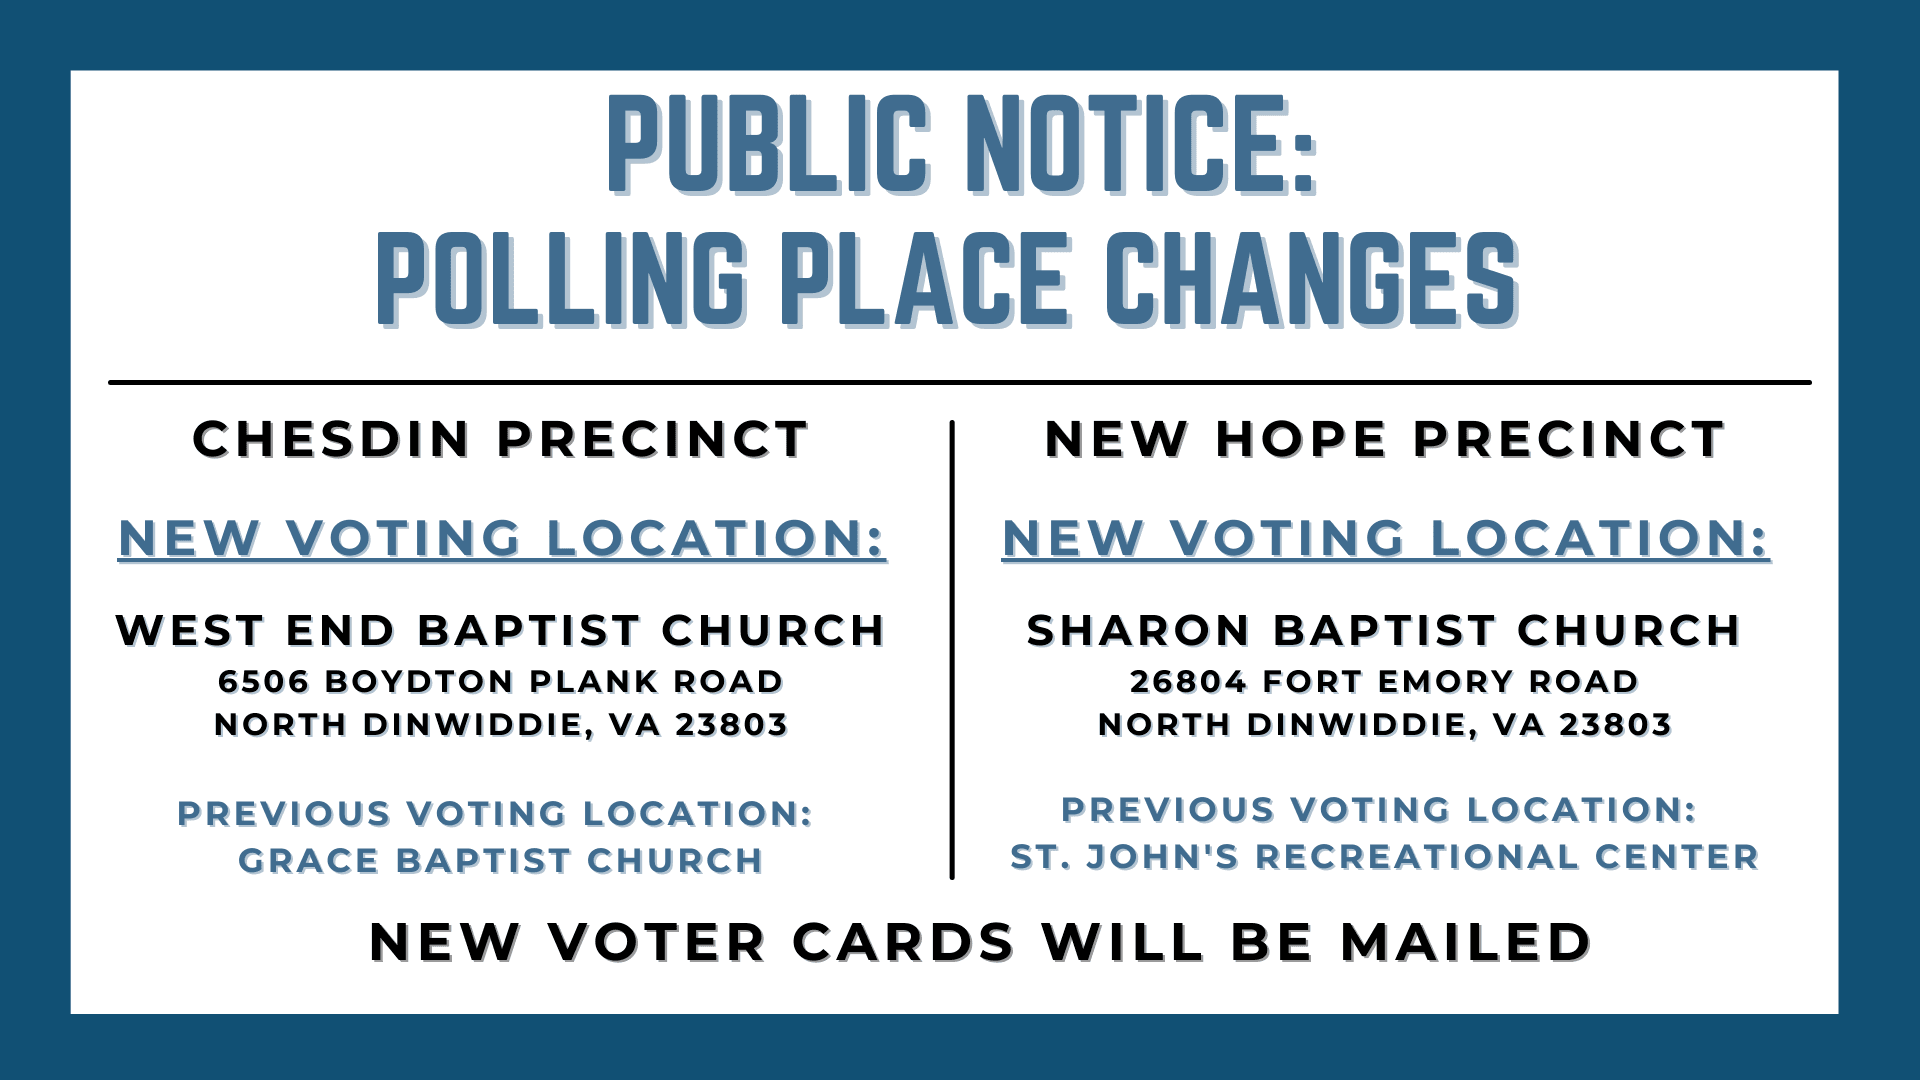 Polling Place Change